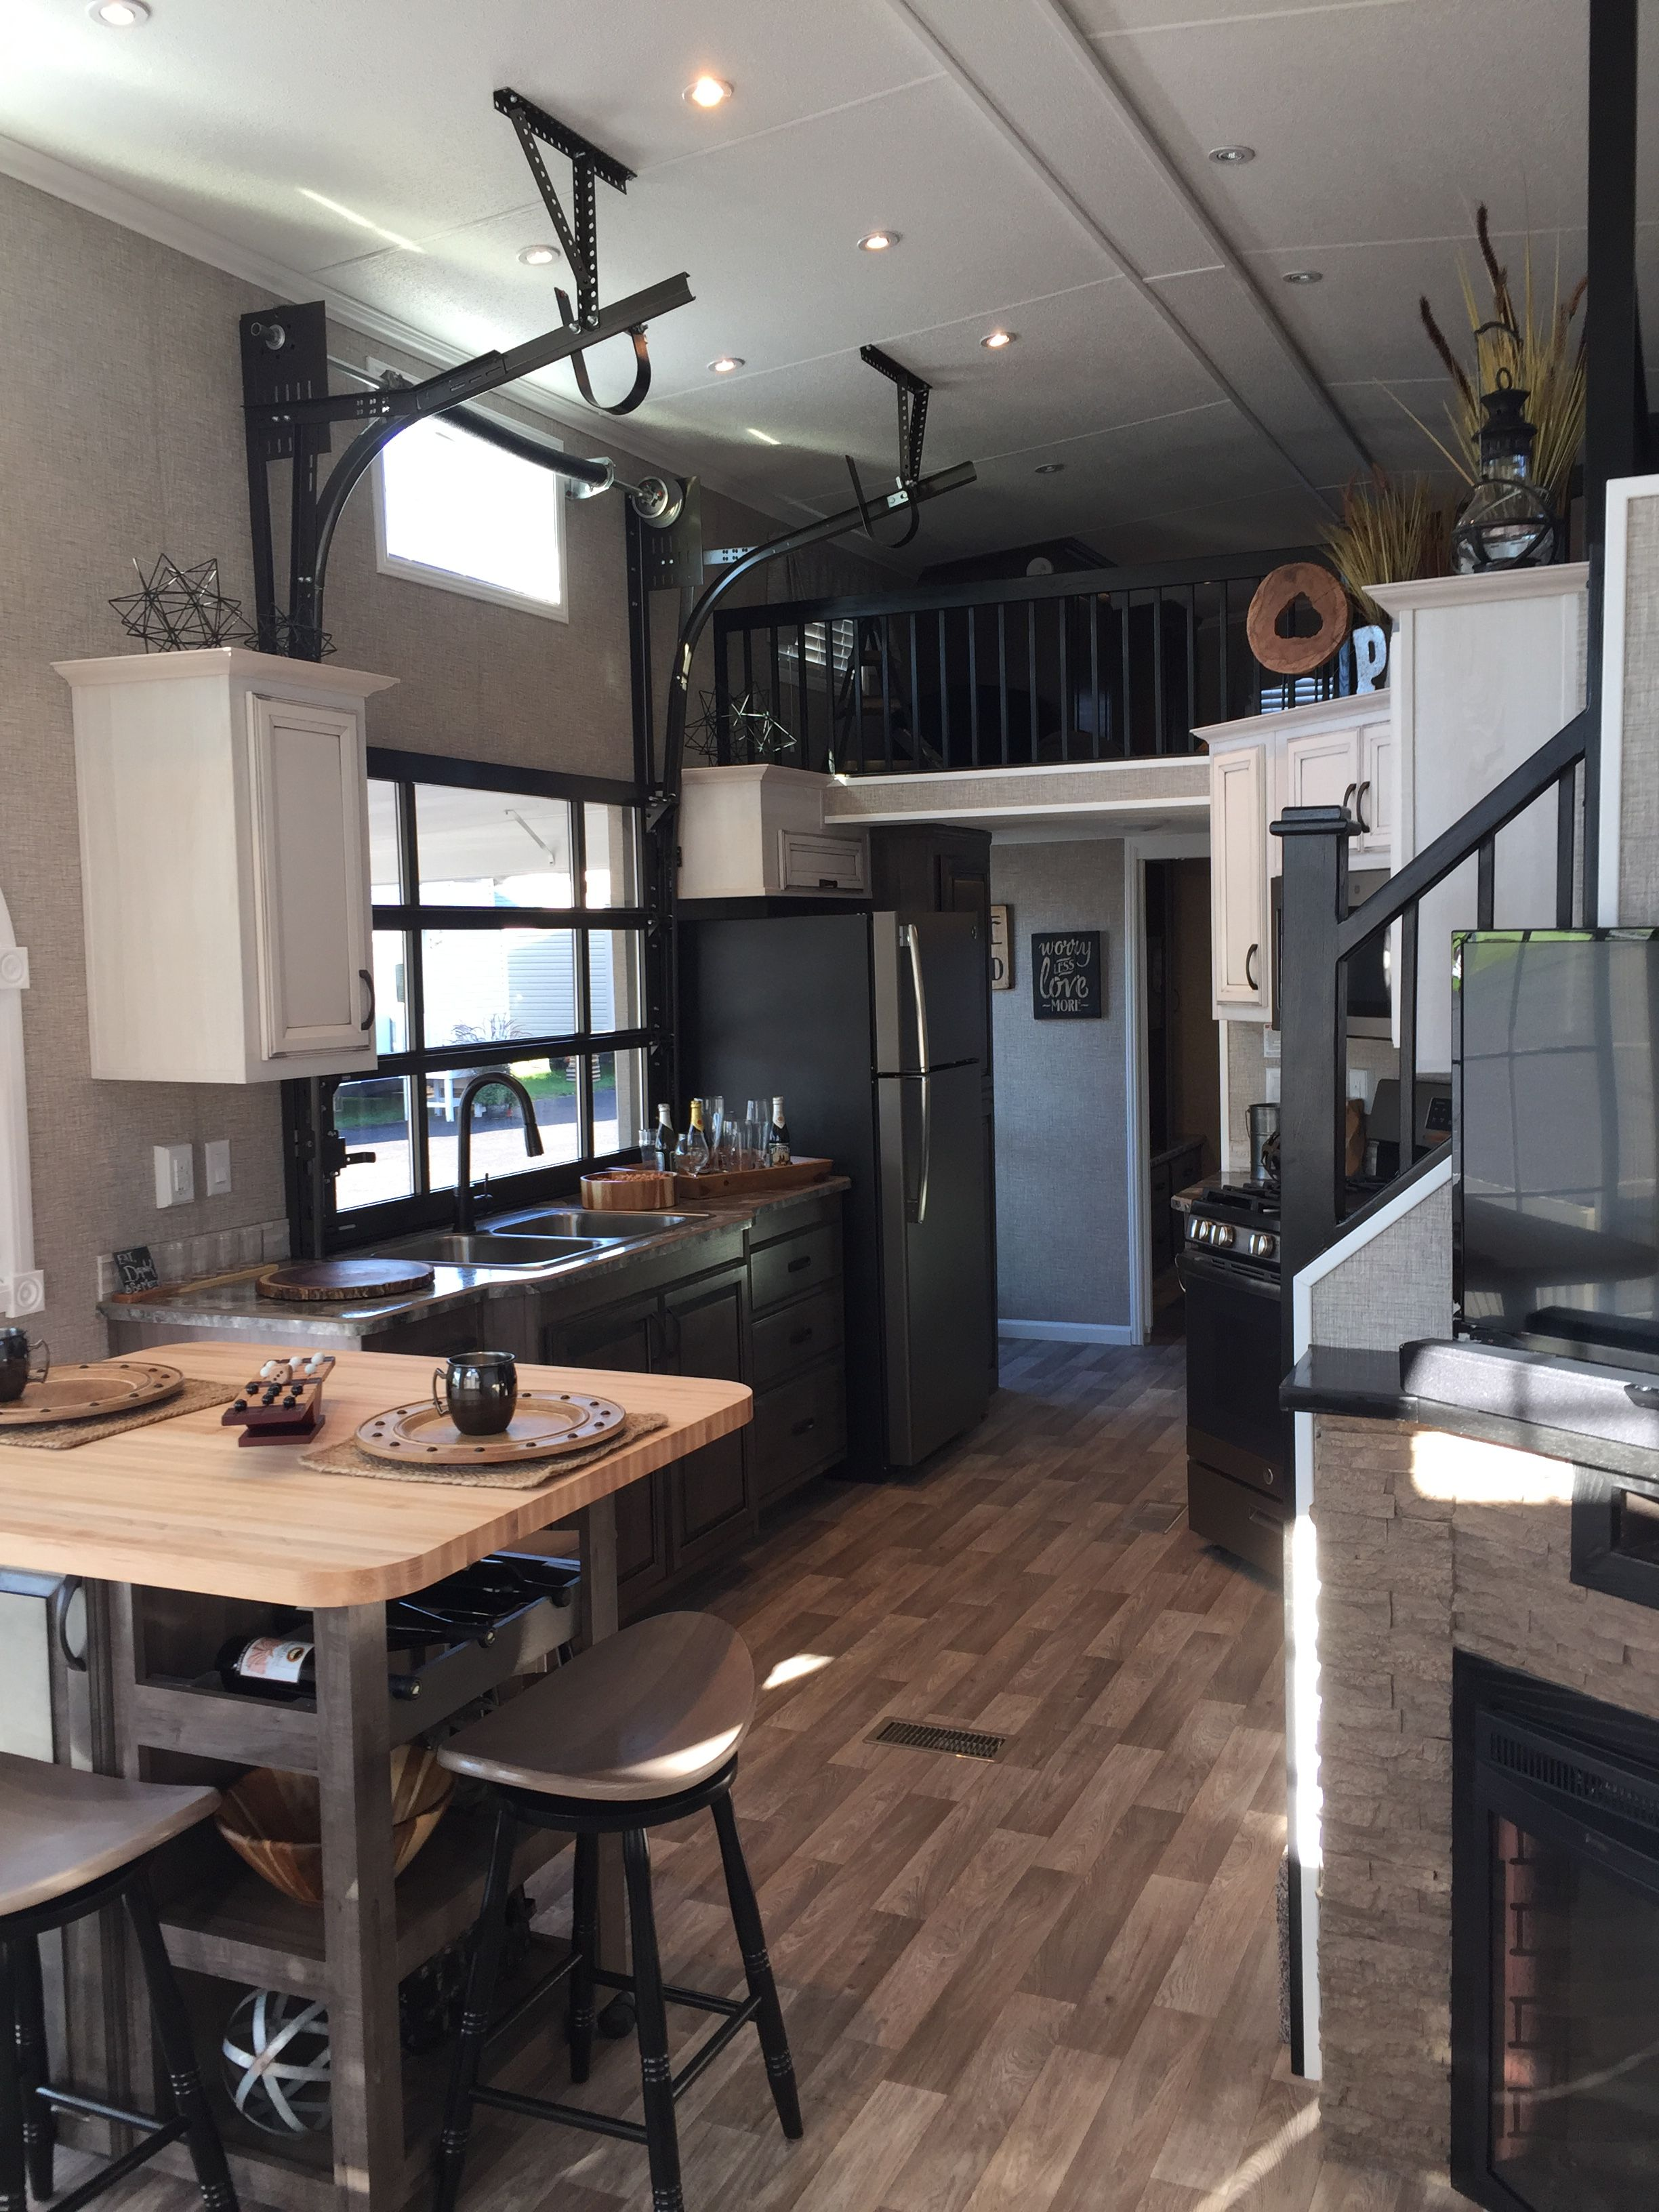 Kropf Island Park Model Tiny House Living In 2019 - Year of